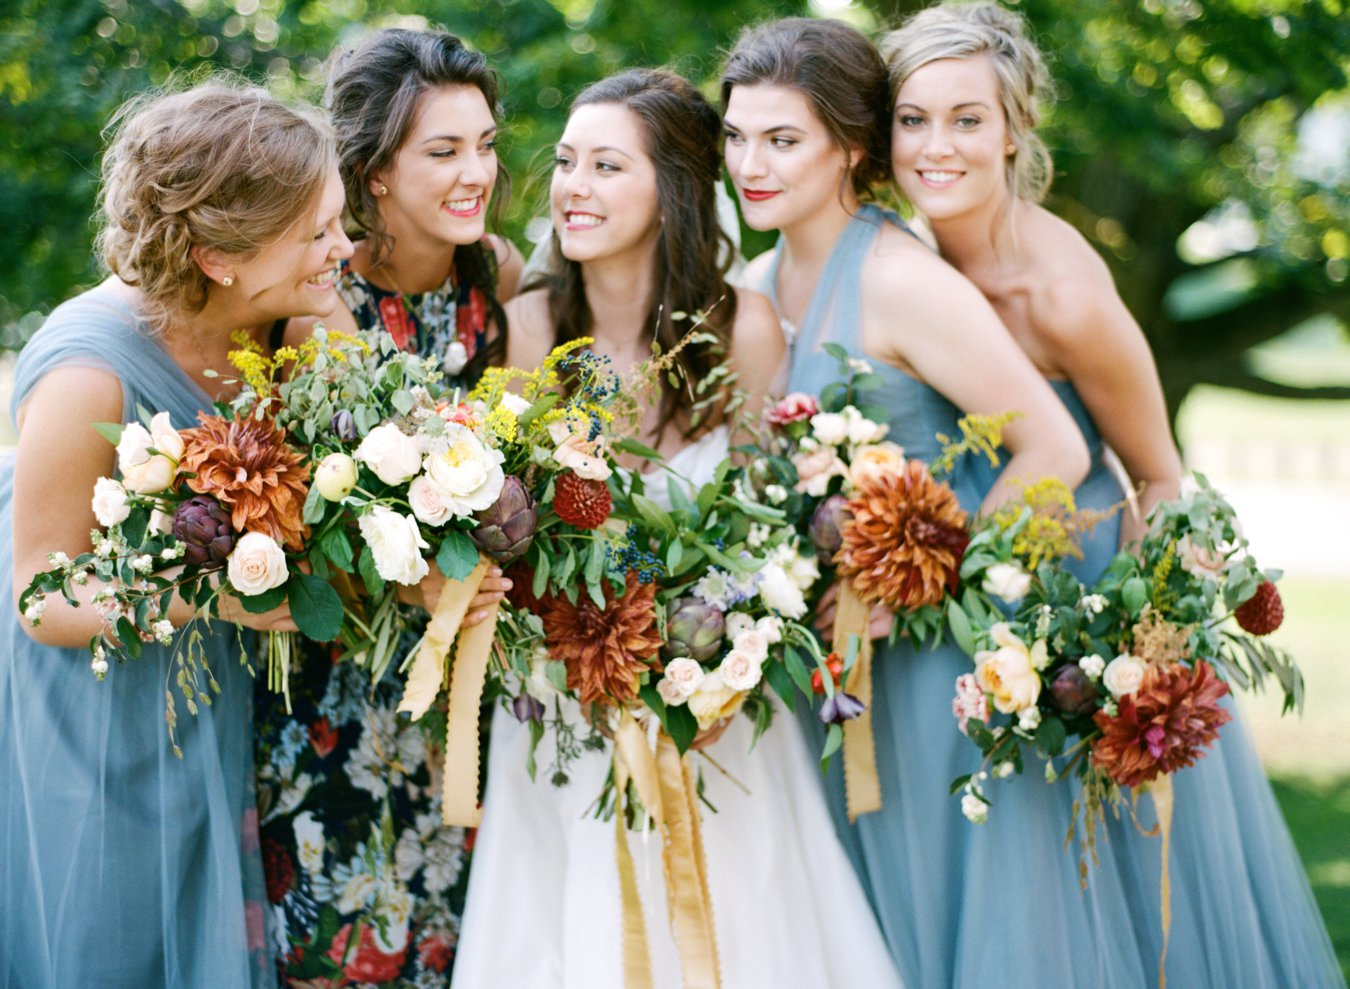 Jenny Yoo Dusty Blue bridesmaids dresses | The Day's Design Floral | Holland Michiagn Wedding | The Felt Mansion Holland Michigan Wedding Ceremony | Cory Weber Photography